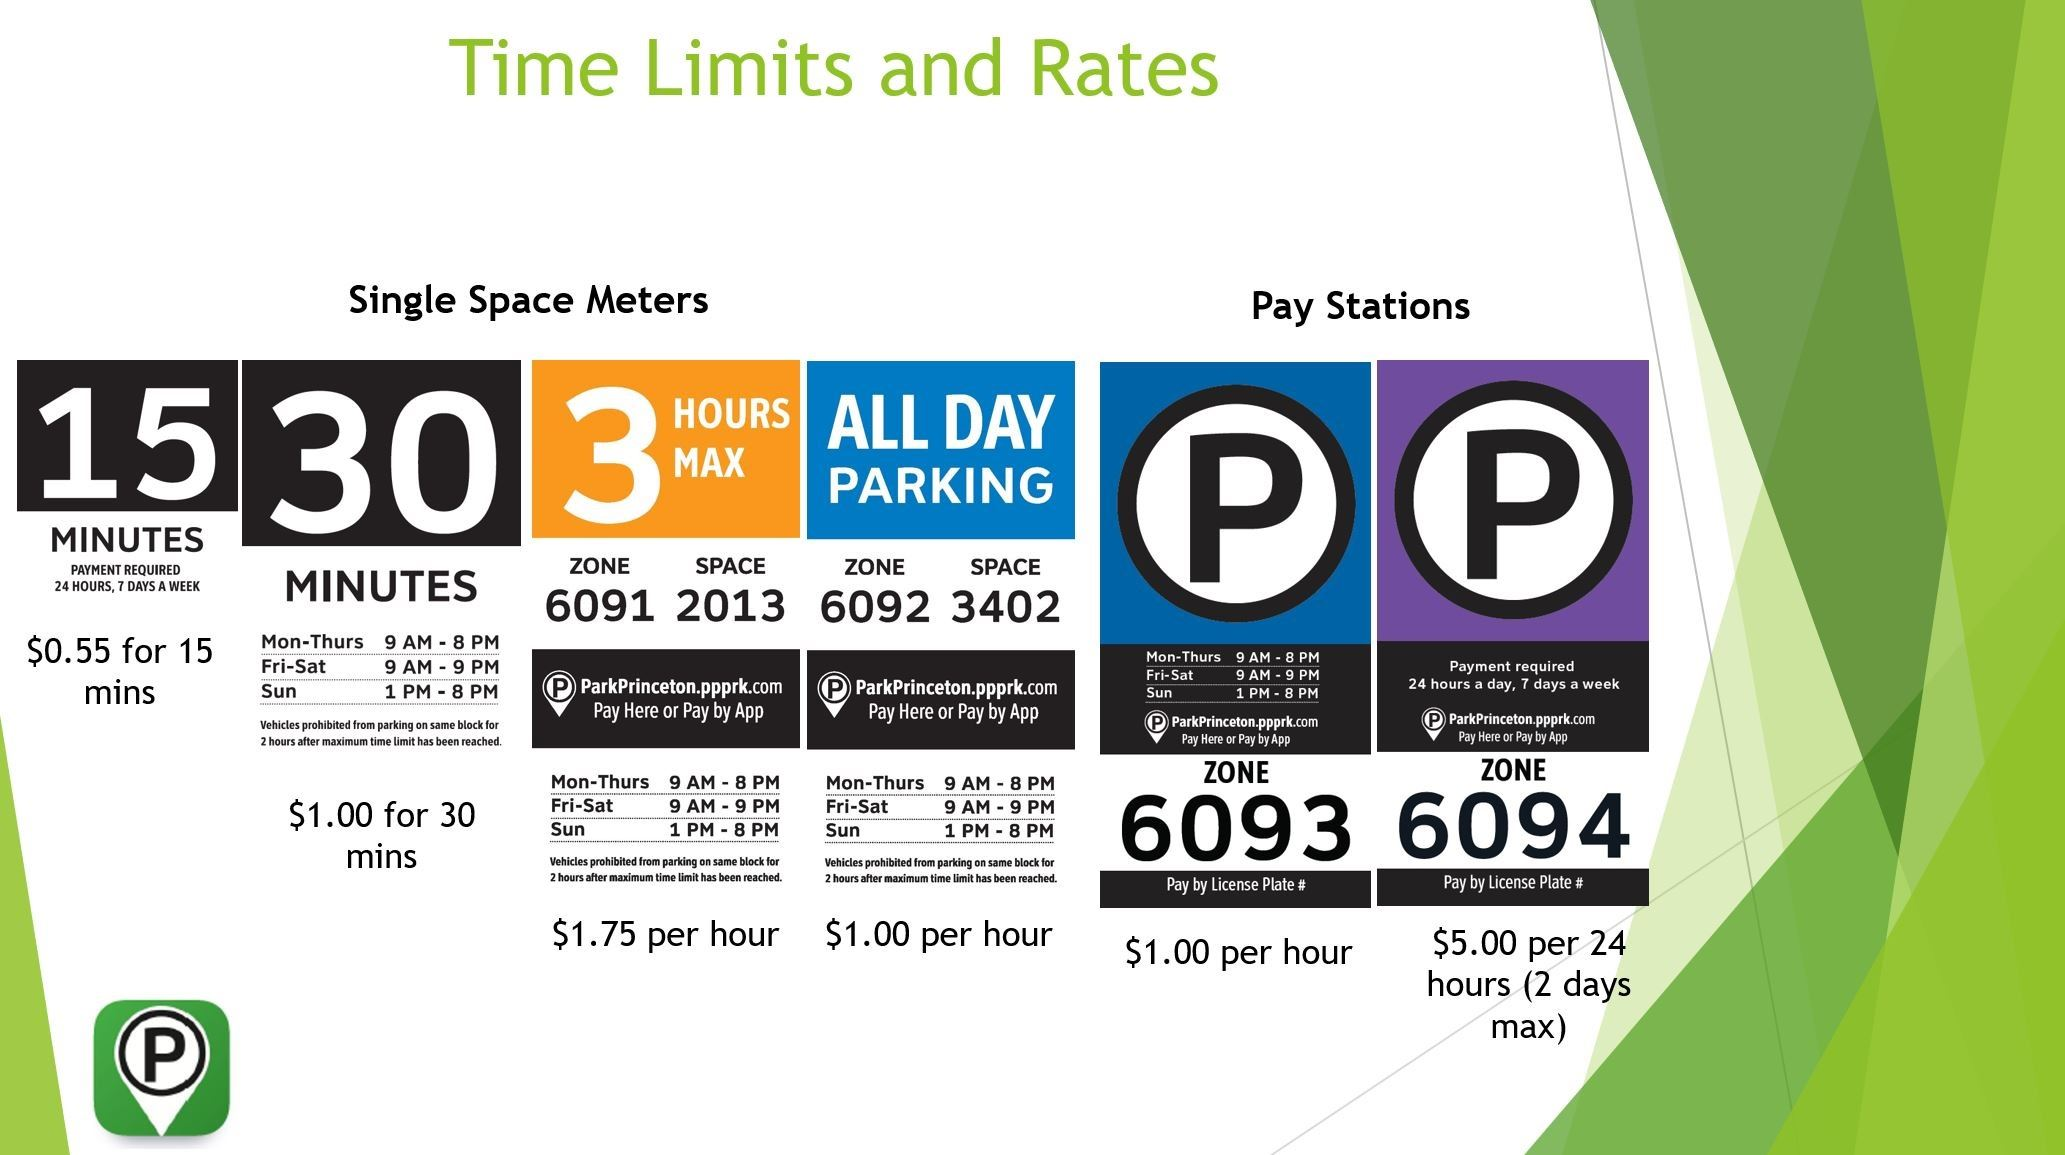 Time Limits and Rates